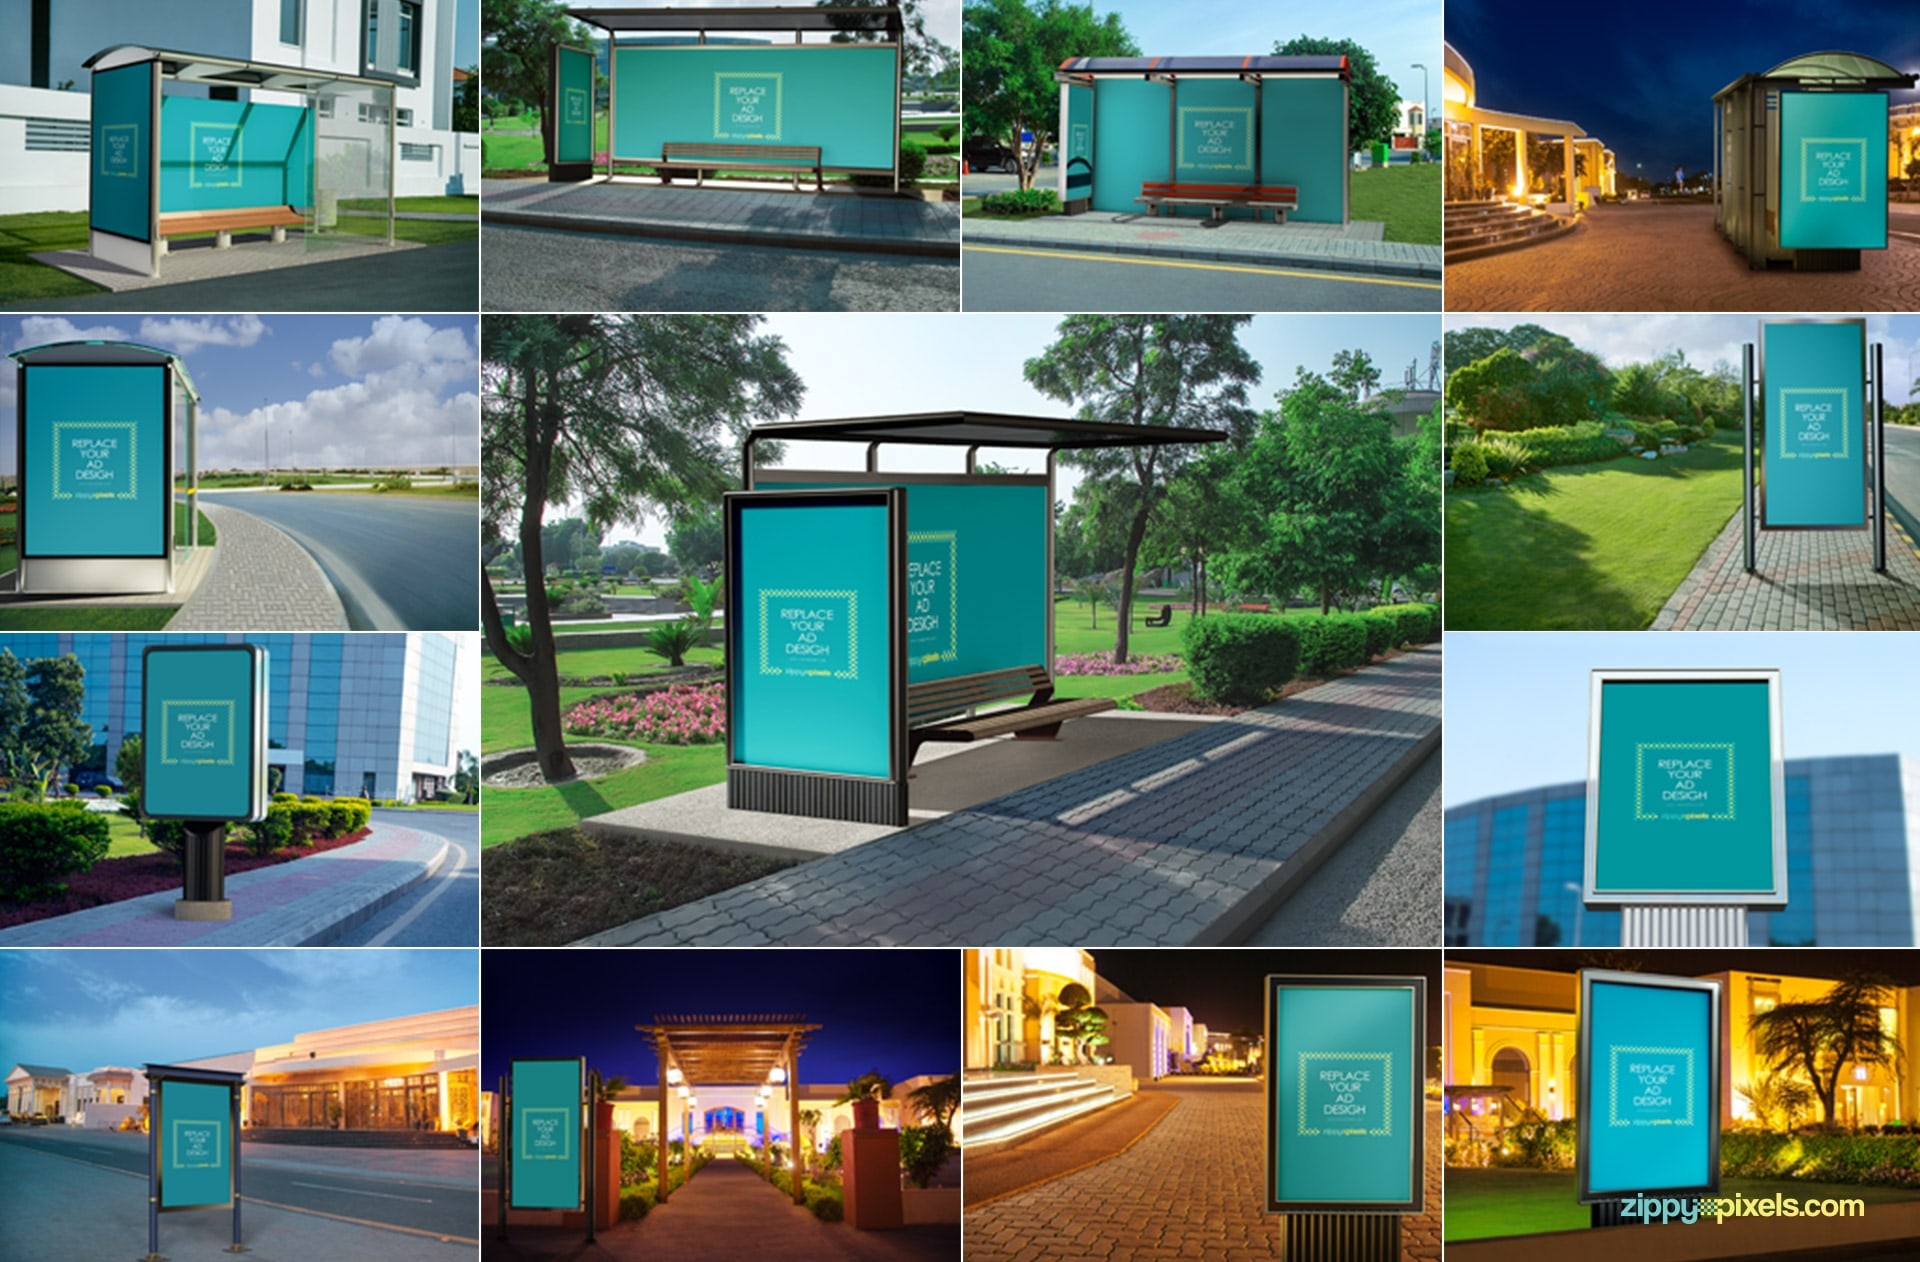 Bus stop and road side poster mockups with endless possibilities.